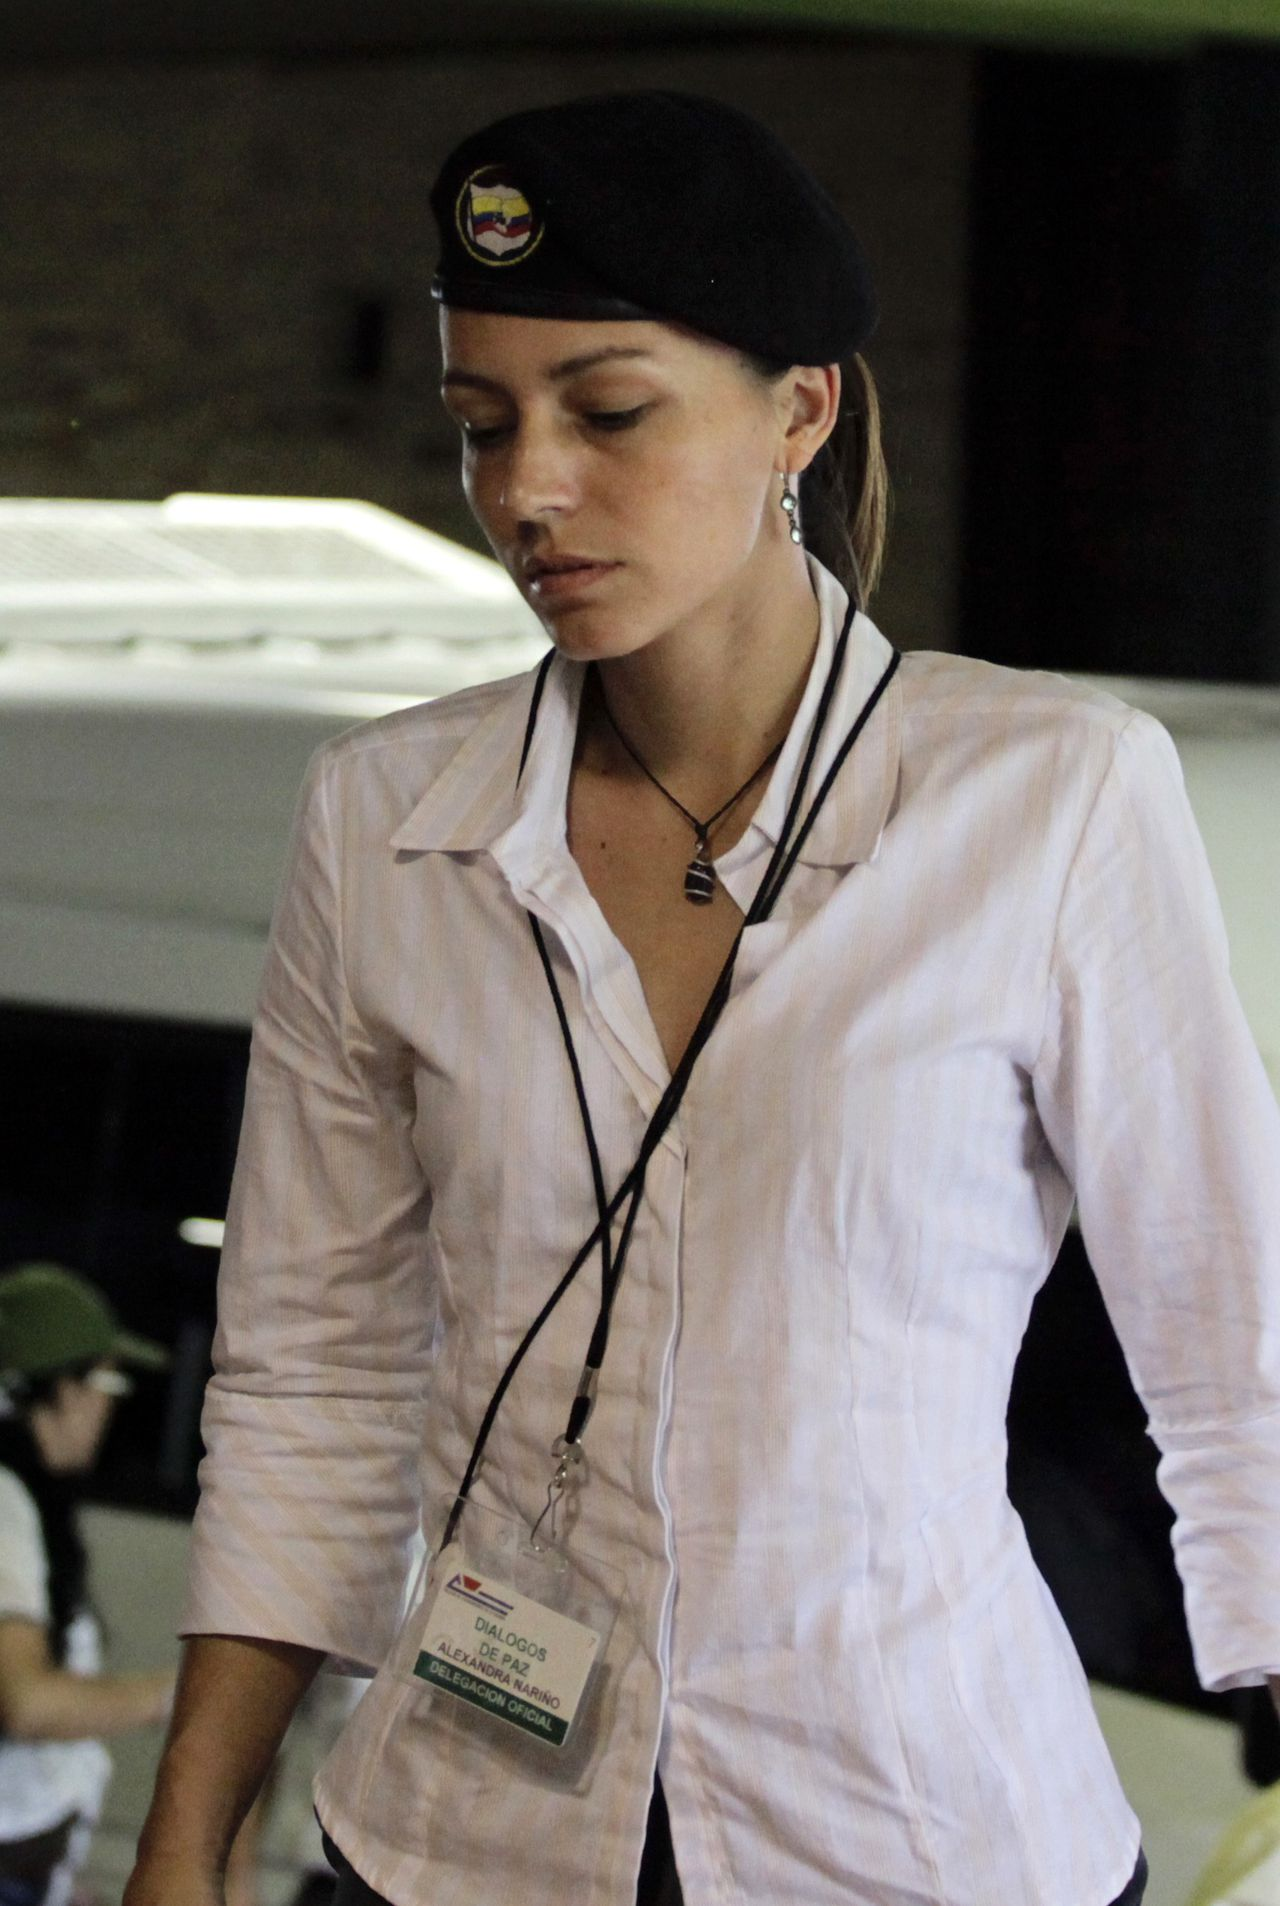 Tanja Nijmeijer of the Netherlands, an active member of the FARC rebel group, arrives to talks in Havana November 19, 2012. Colombia's Marxist FARC rebels announced a unilateral two-month ceasefire on Monday as they opened negotiations with the government in an attempt to restore peace after nearly half a century of war. The FARC will halt all offensive military operations and acts of sabotage against infrastructure beginning at midnight on Monday night and running through Jan. 20, FARC lead negotiator Ivan Marquez said as he arrived for talks in Havana. REUTERS/Desmond Boylan (CUBA - Tags: POLITICS CIVIL UNREST)